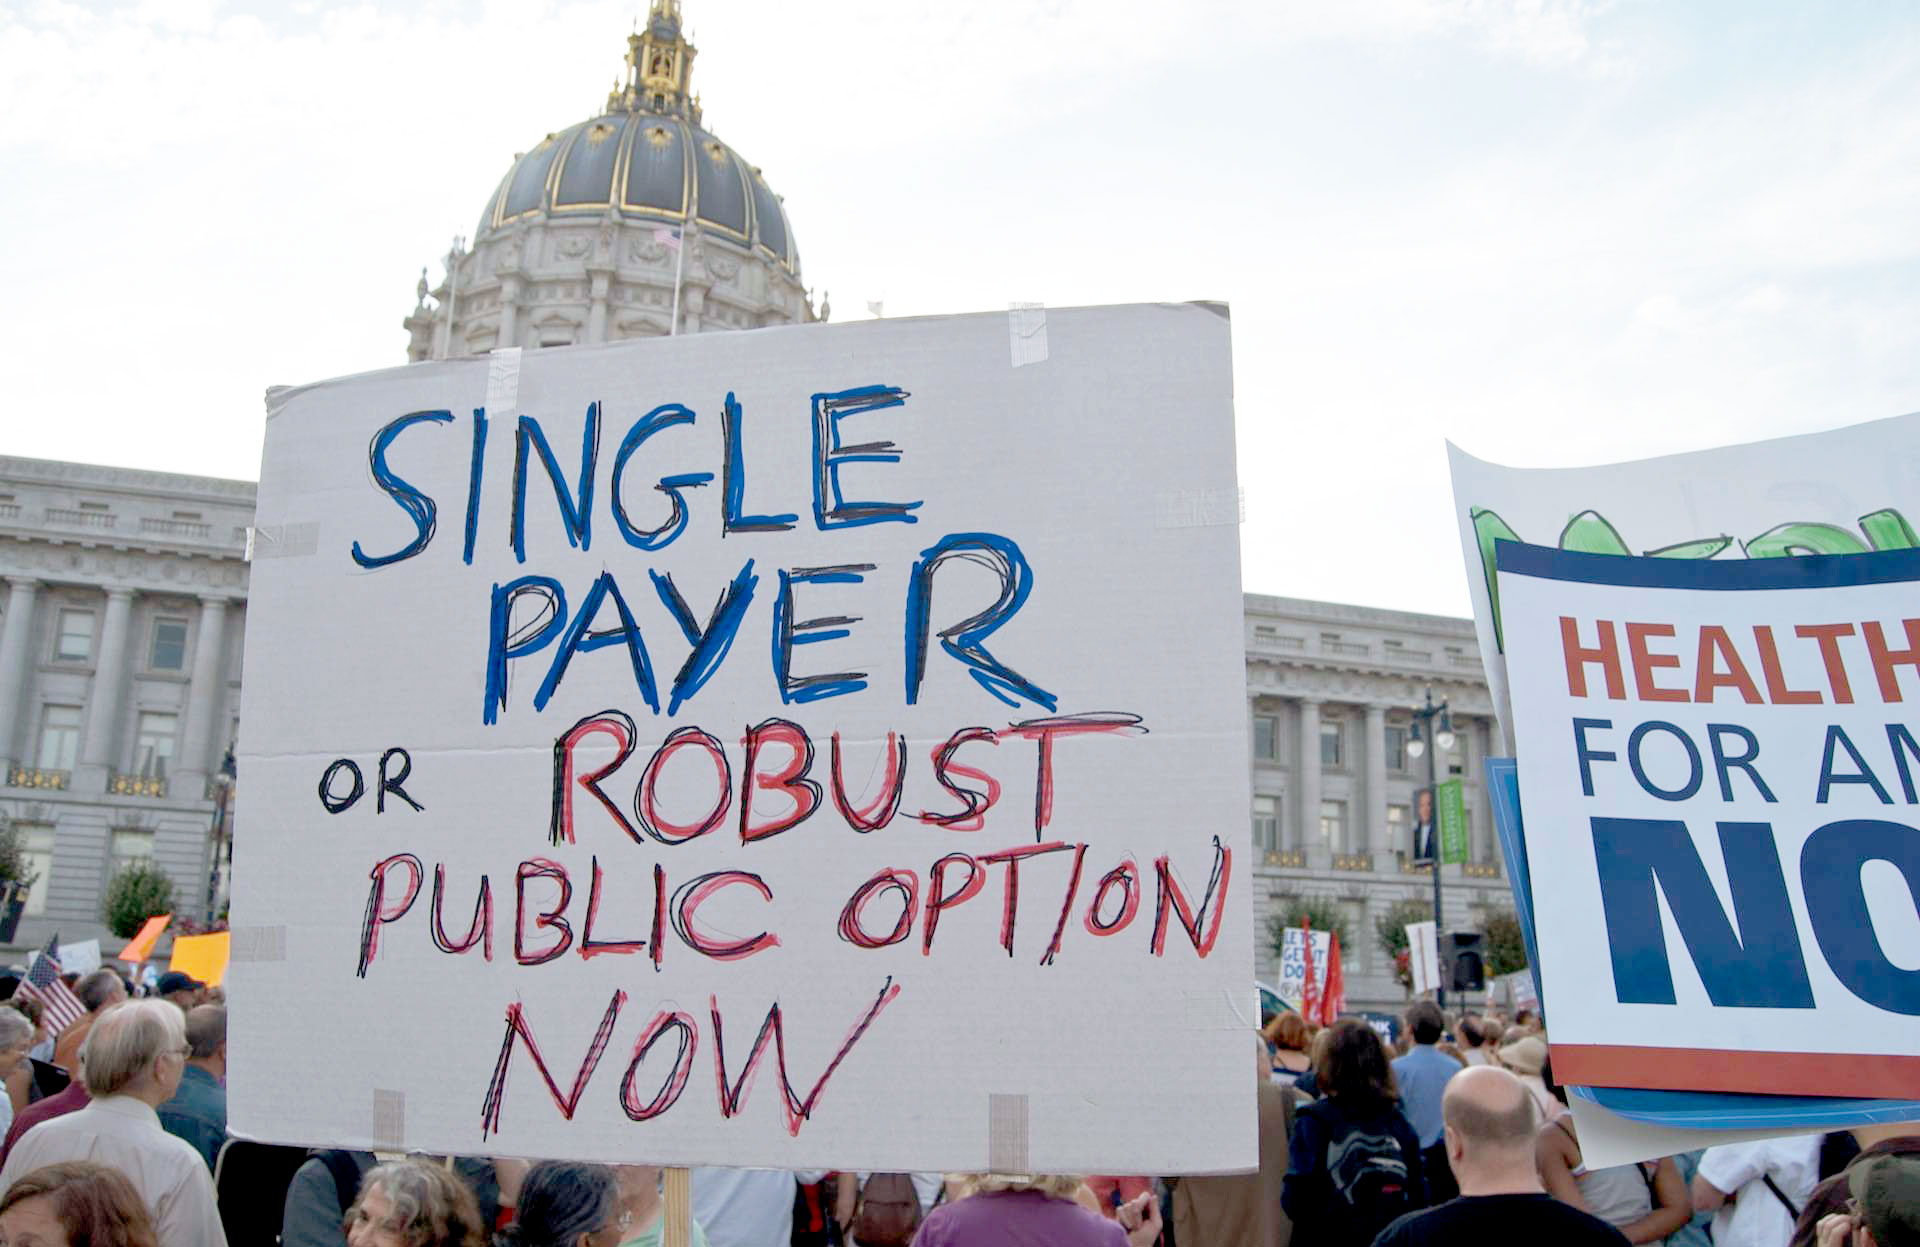 A demonstrator holds a sign at a health care reform rally at San Francisco City Hall.